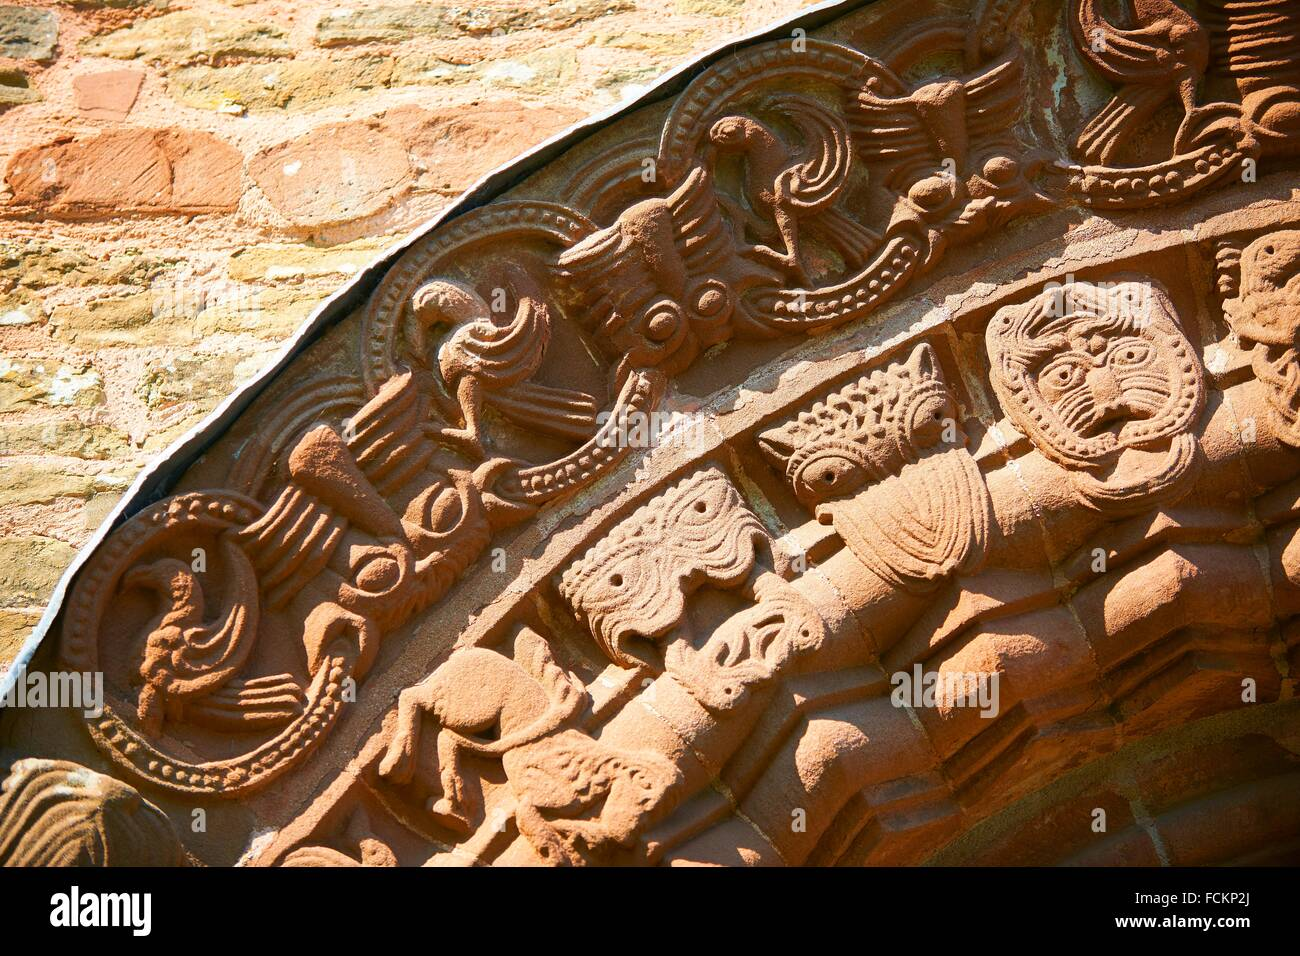 Norman Romanesque relief sculptures of dragons and mythical creatures depicting the struggle between good and evil, - Stock Image